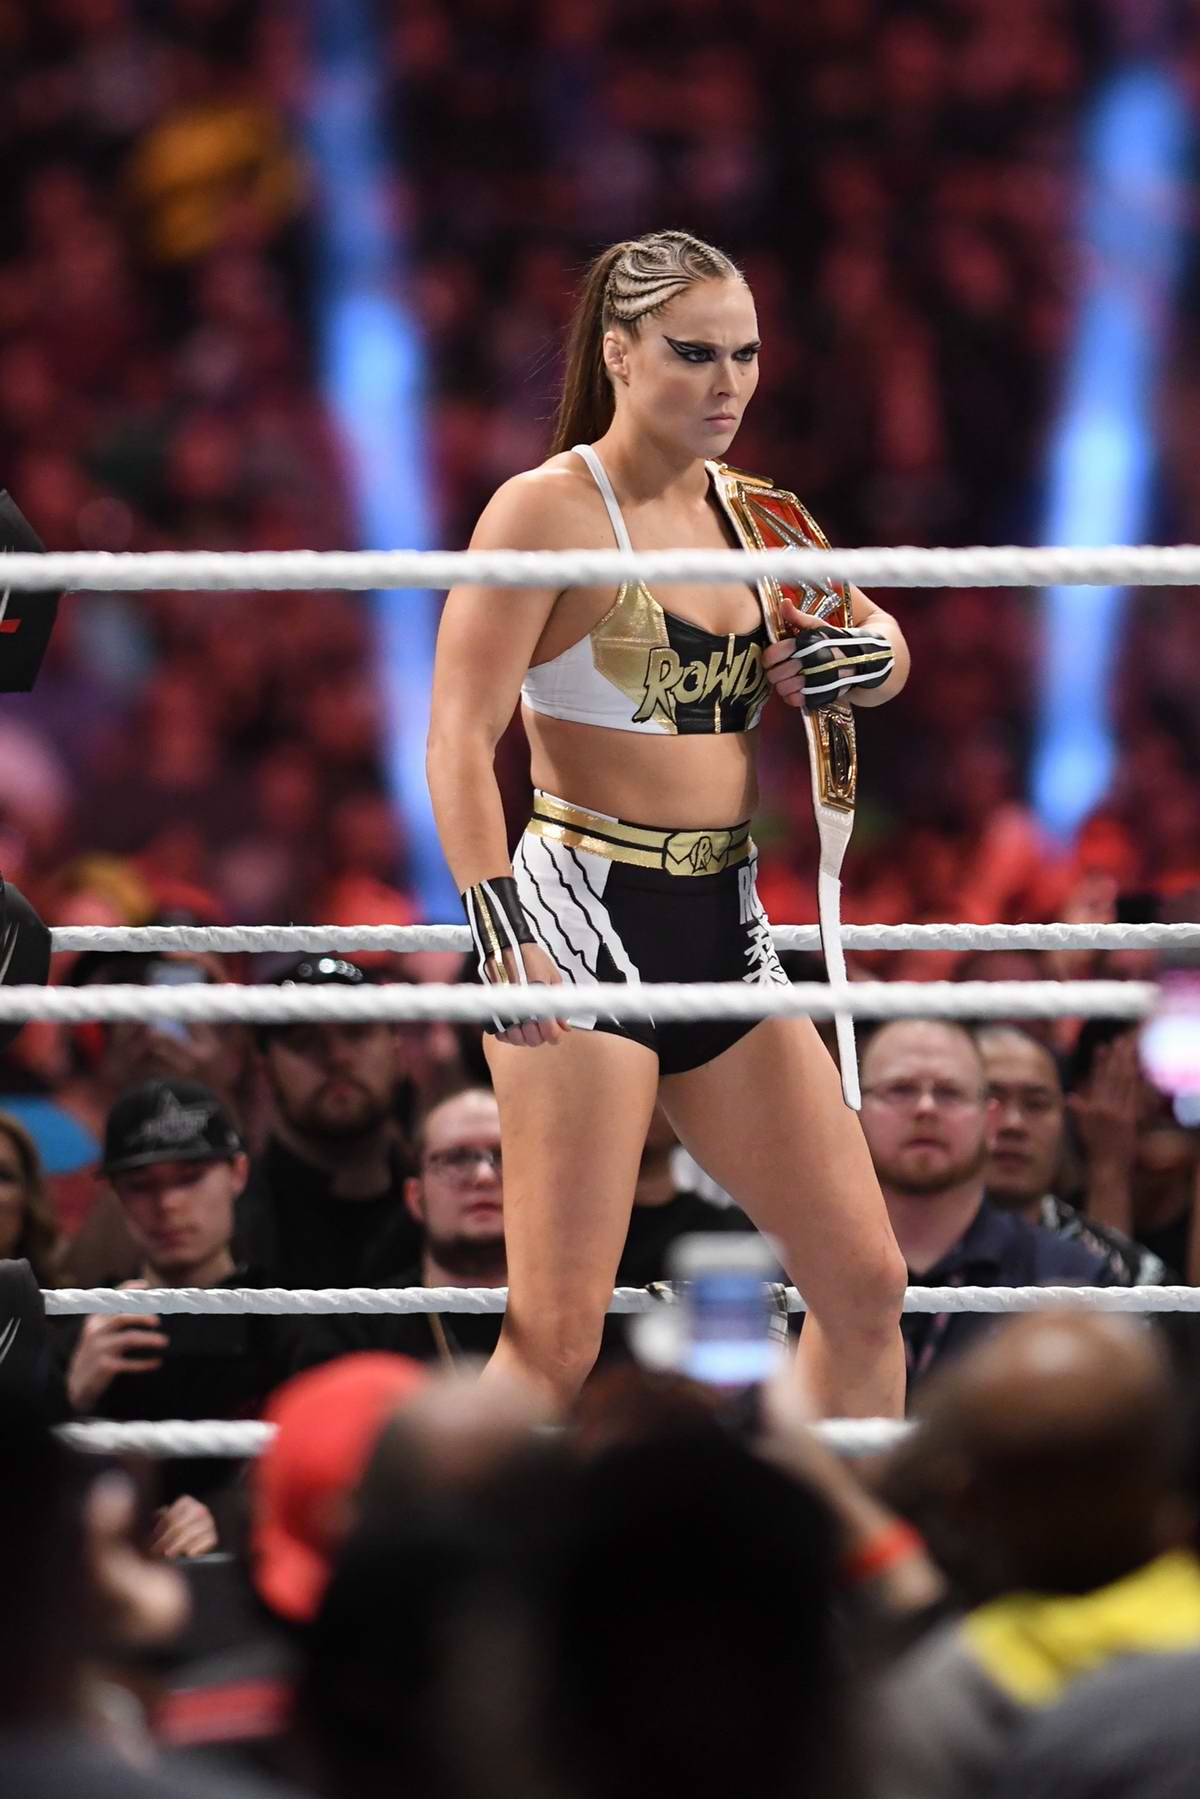 Ronda Rousey in the ring during her match against Sasha Banks at WWE's 2019 Royal Rumble in Phoenix, Arizona